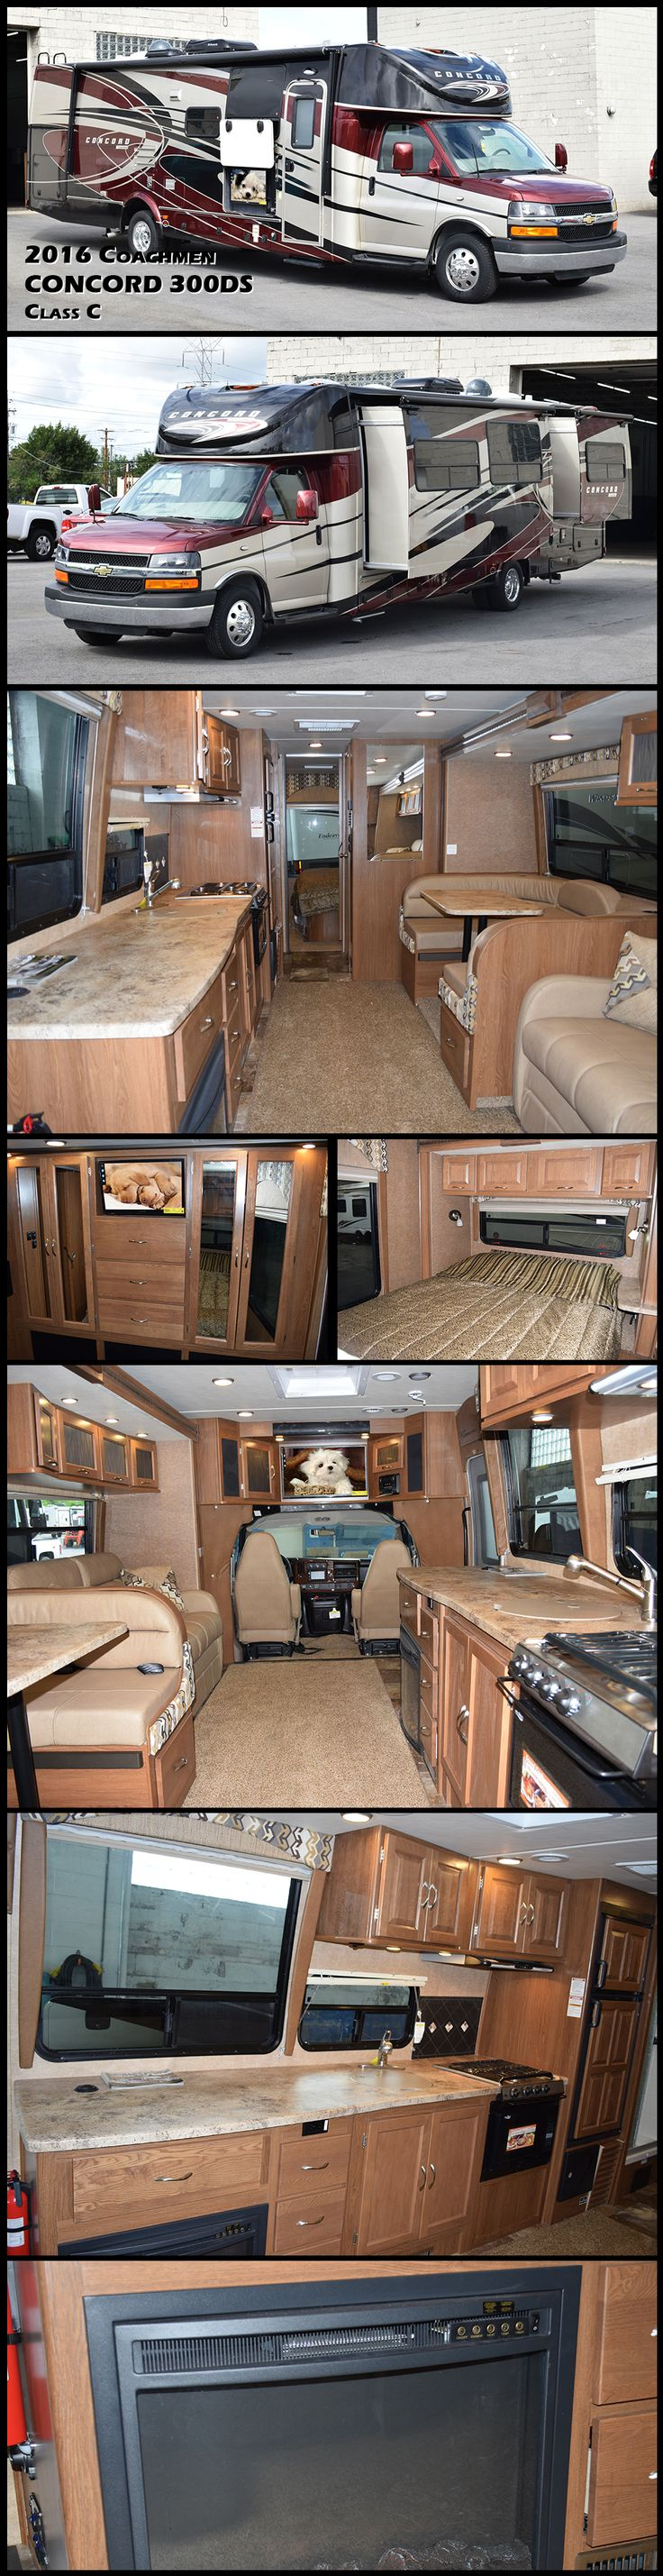 Hit the road with all the comforts of home in this 2016 COACHMEN CONCORD Class C Motorhome. Model 300DS offers double slides, a rear bedroom layout, and everything you need to enjoy your time away from home. Straight ahead when you enter notice the large slide out with sofa and u-shaped dinette. Both offer much seating space to enjoy a meal at, or to just relax and kick back after a fun filled day of adventure and exploring.